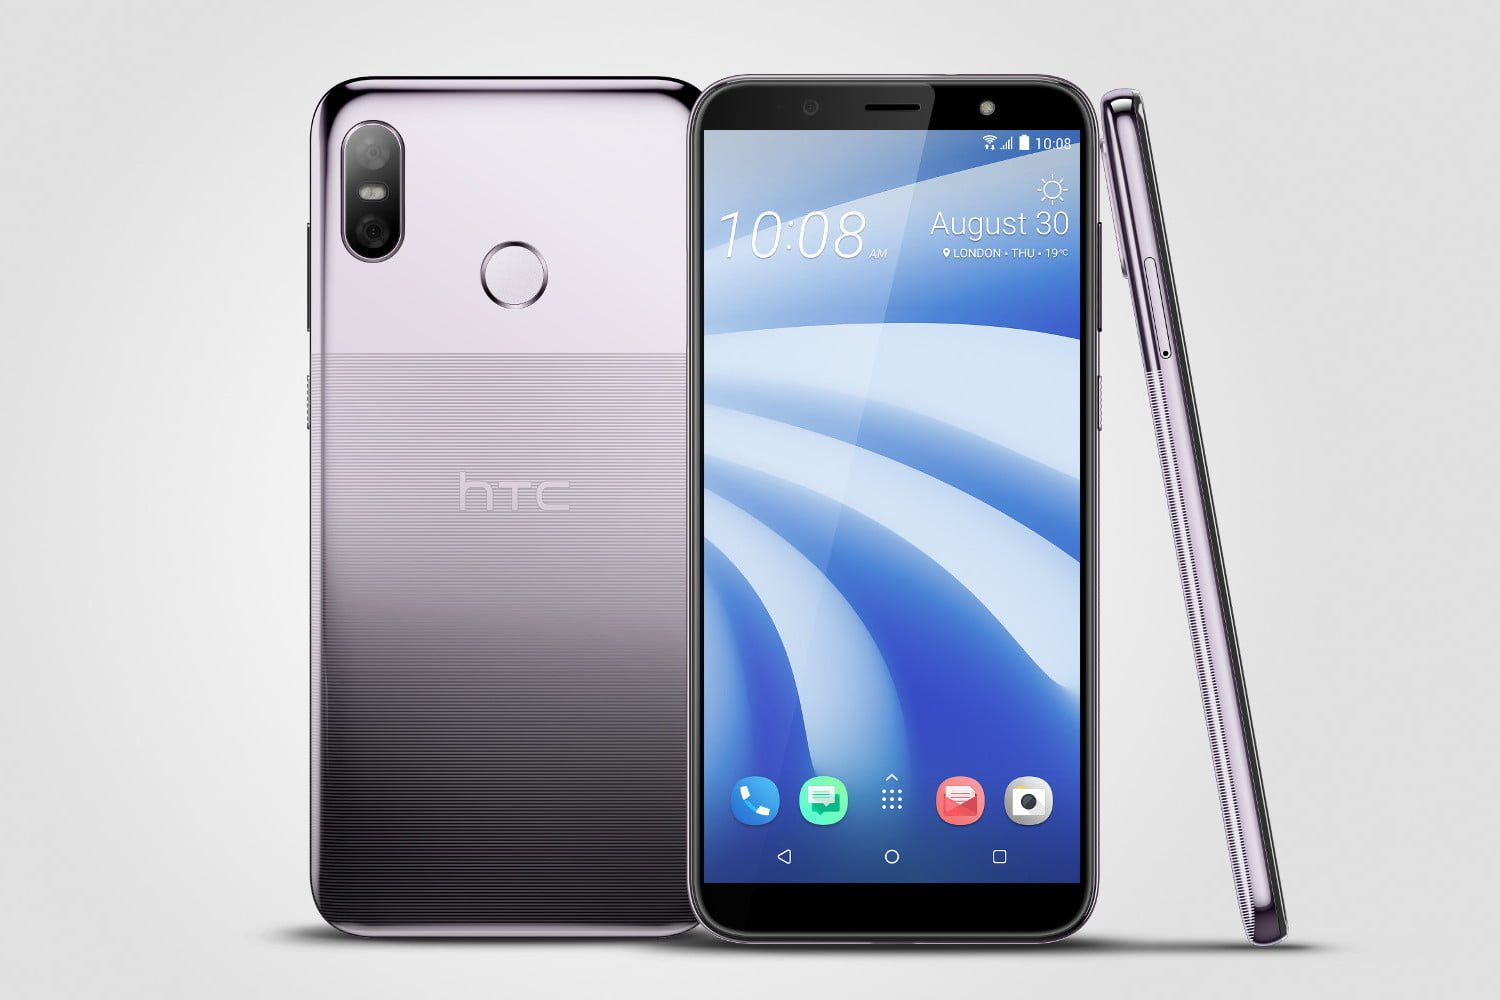 How to Root HTC U12 life with Magisk without TWRP